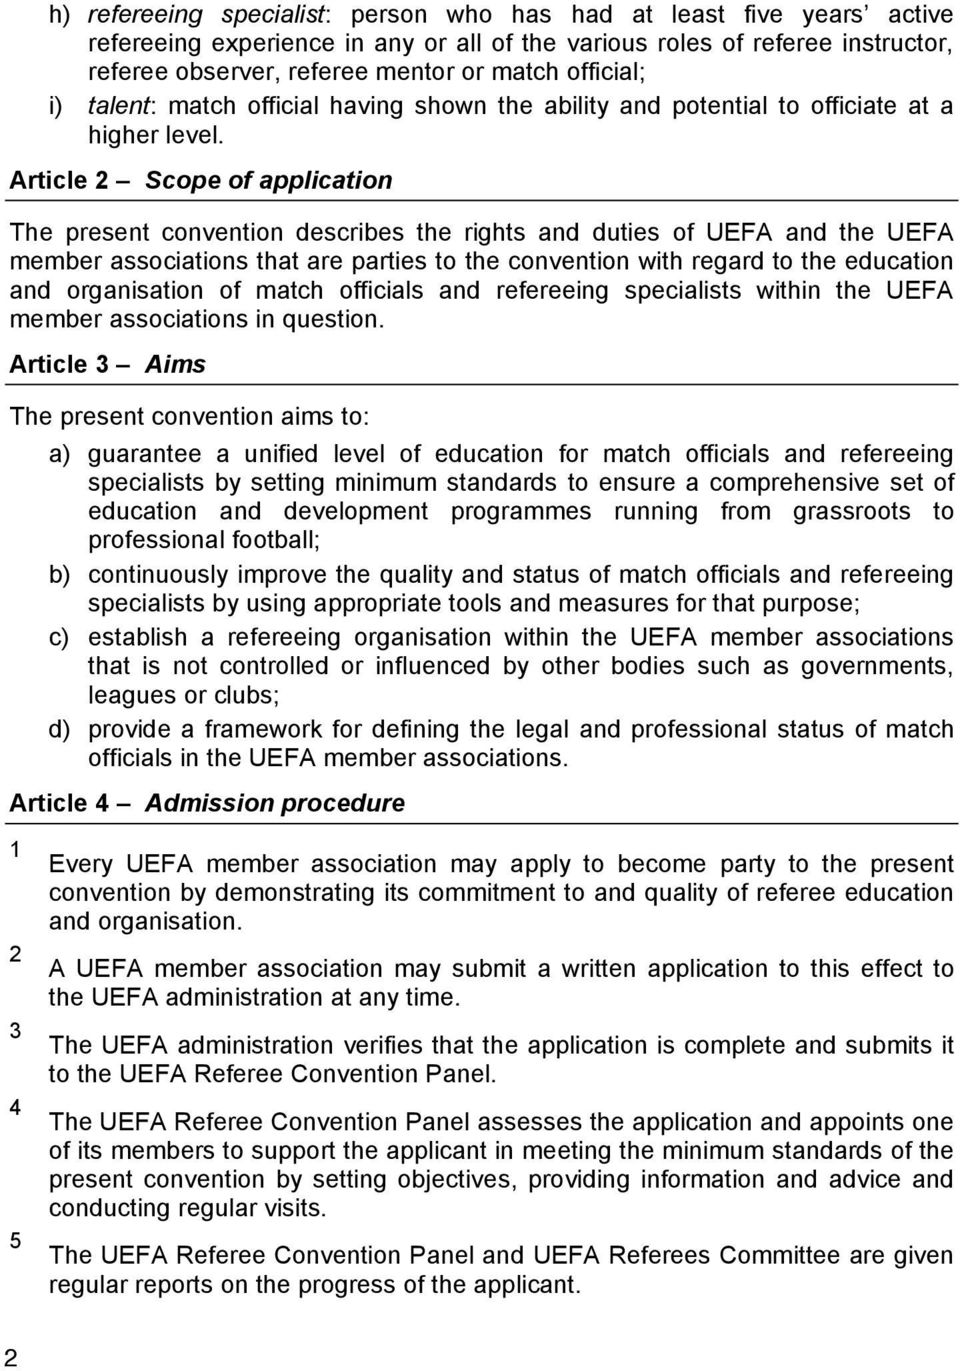 Article 2 Scope of application The present convention describes the rights and duties of UEFA and the UEFA member associations that are parties to the convention with regard to the education and